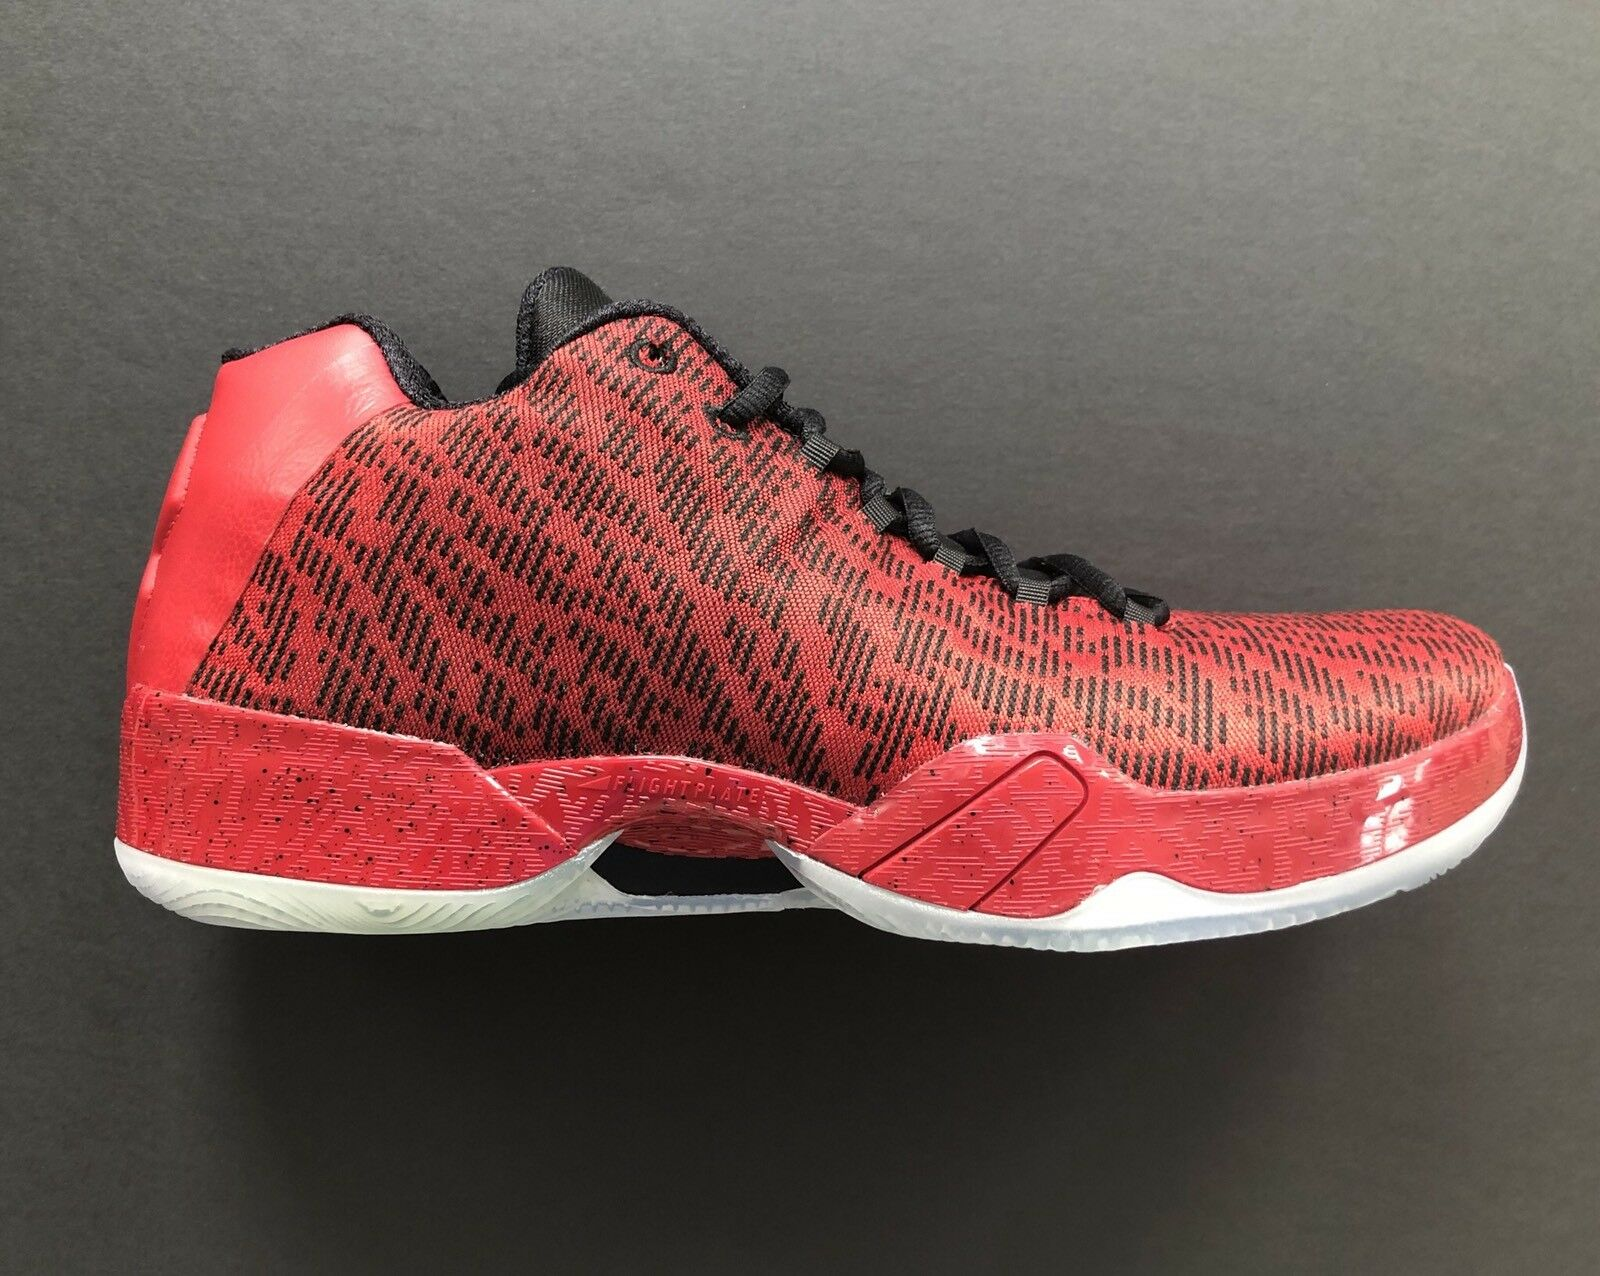 ac18c3413db59e ... wholesale nike air jordan xx9 29 low jimmy butler pe gym gym pe red  flyknit 855514